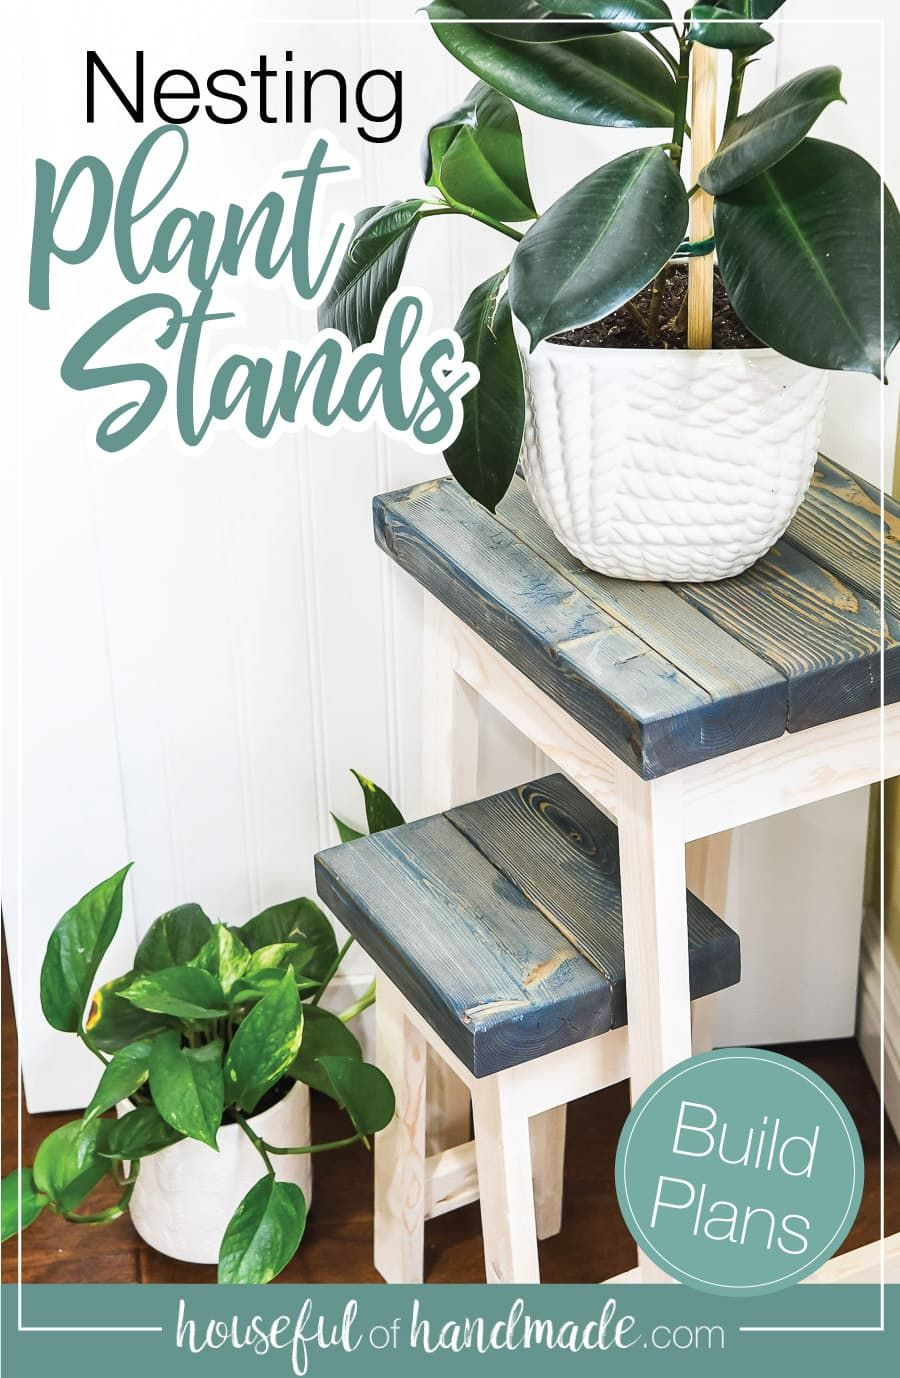 Nesting Plant Stands Build Plans Plant Stand Plant Table Small Plant Stand